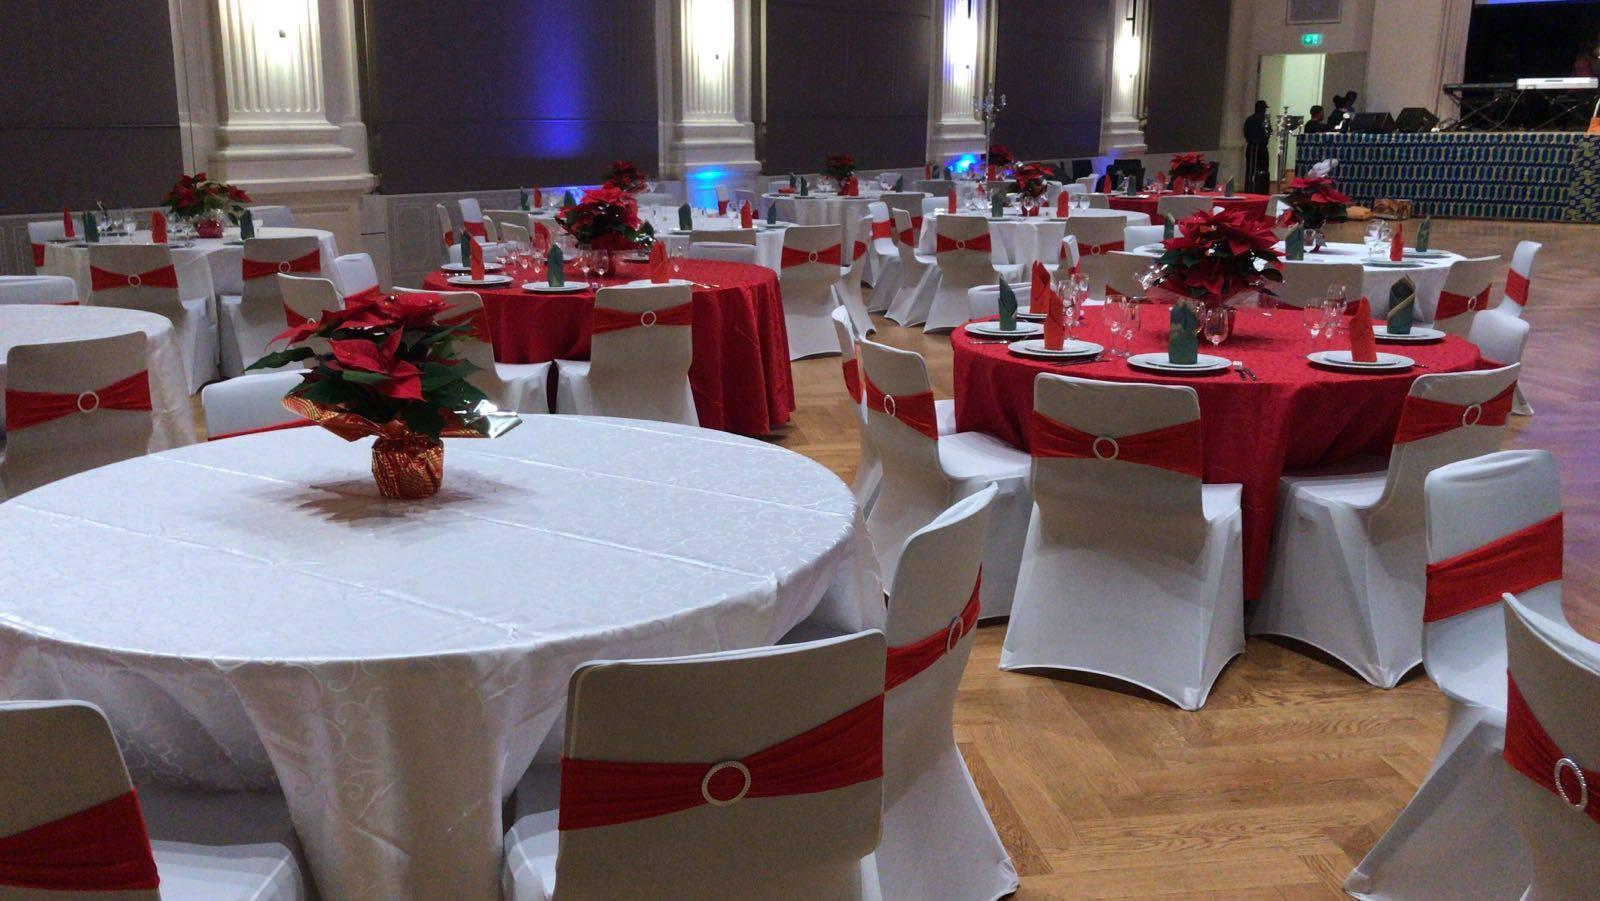 Venue with circular tables decorated in red and white Christmas colors